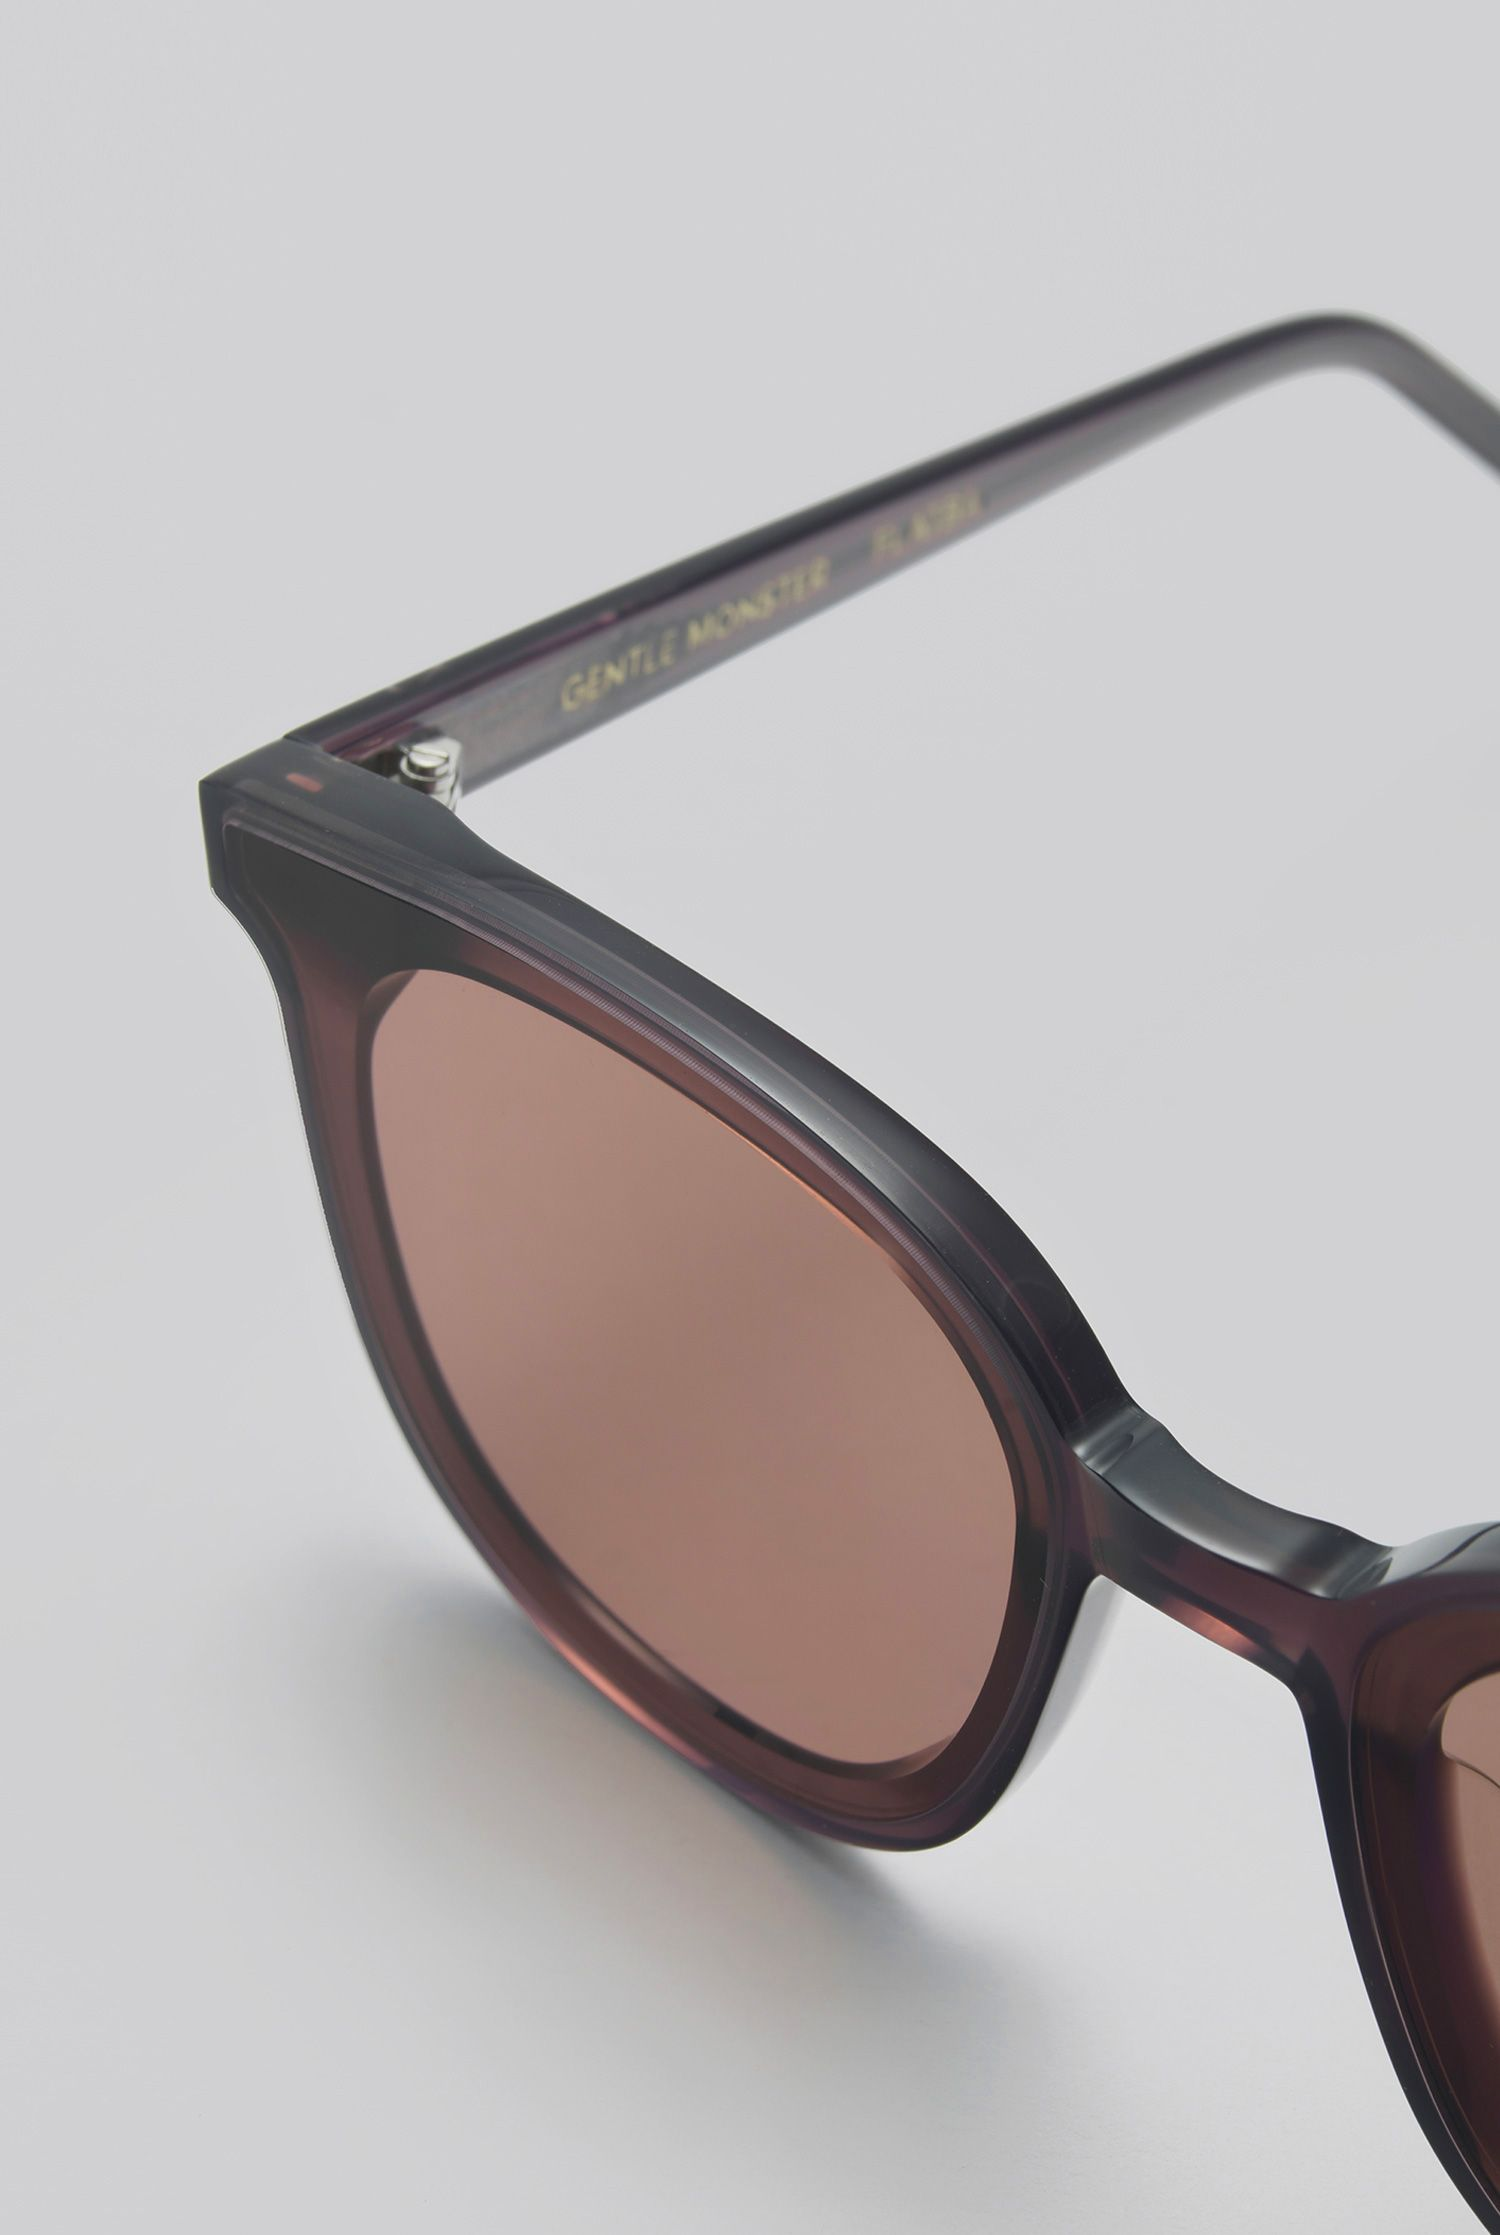 d3525ff8263 GENTLE MONSTER 2018 Sunglasses MA MARS VC3 FLATBA